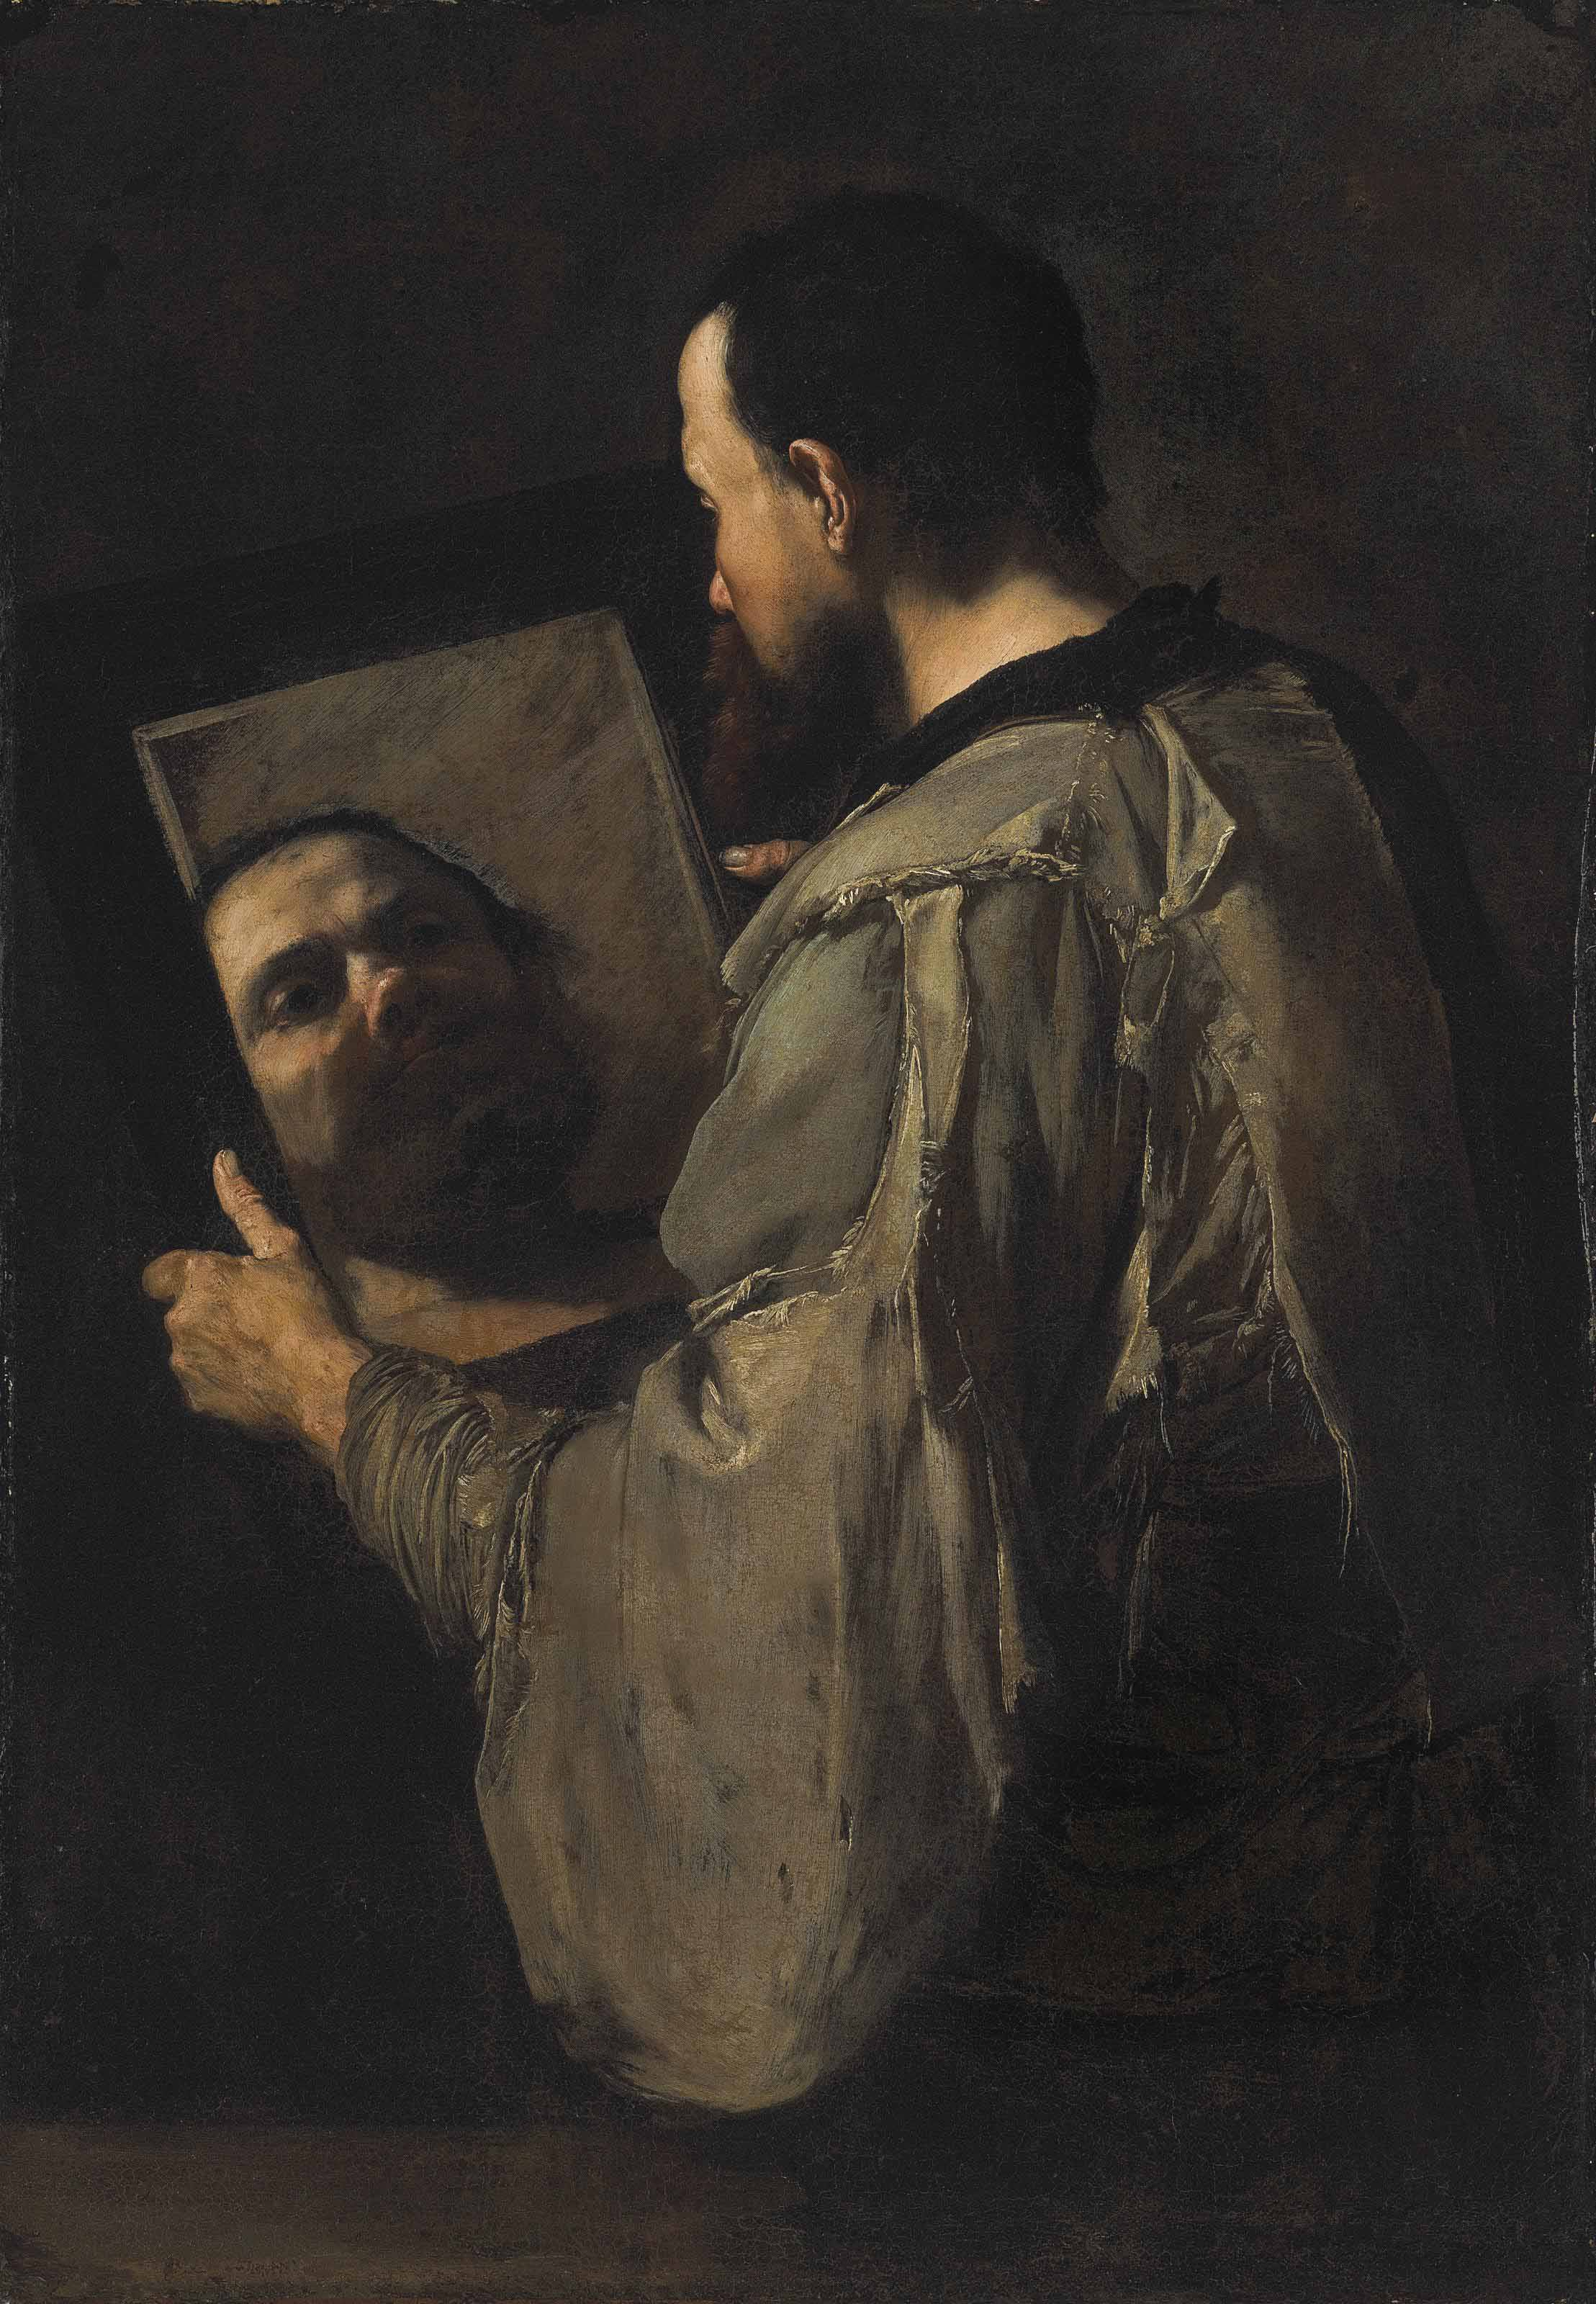 A philosopher holding a mirror